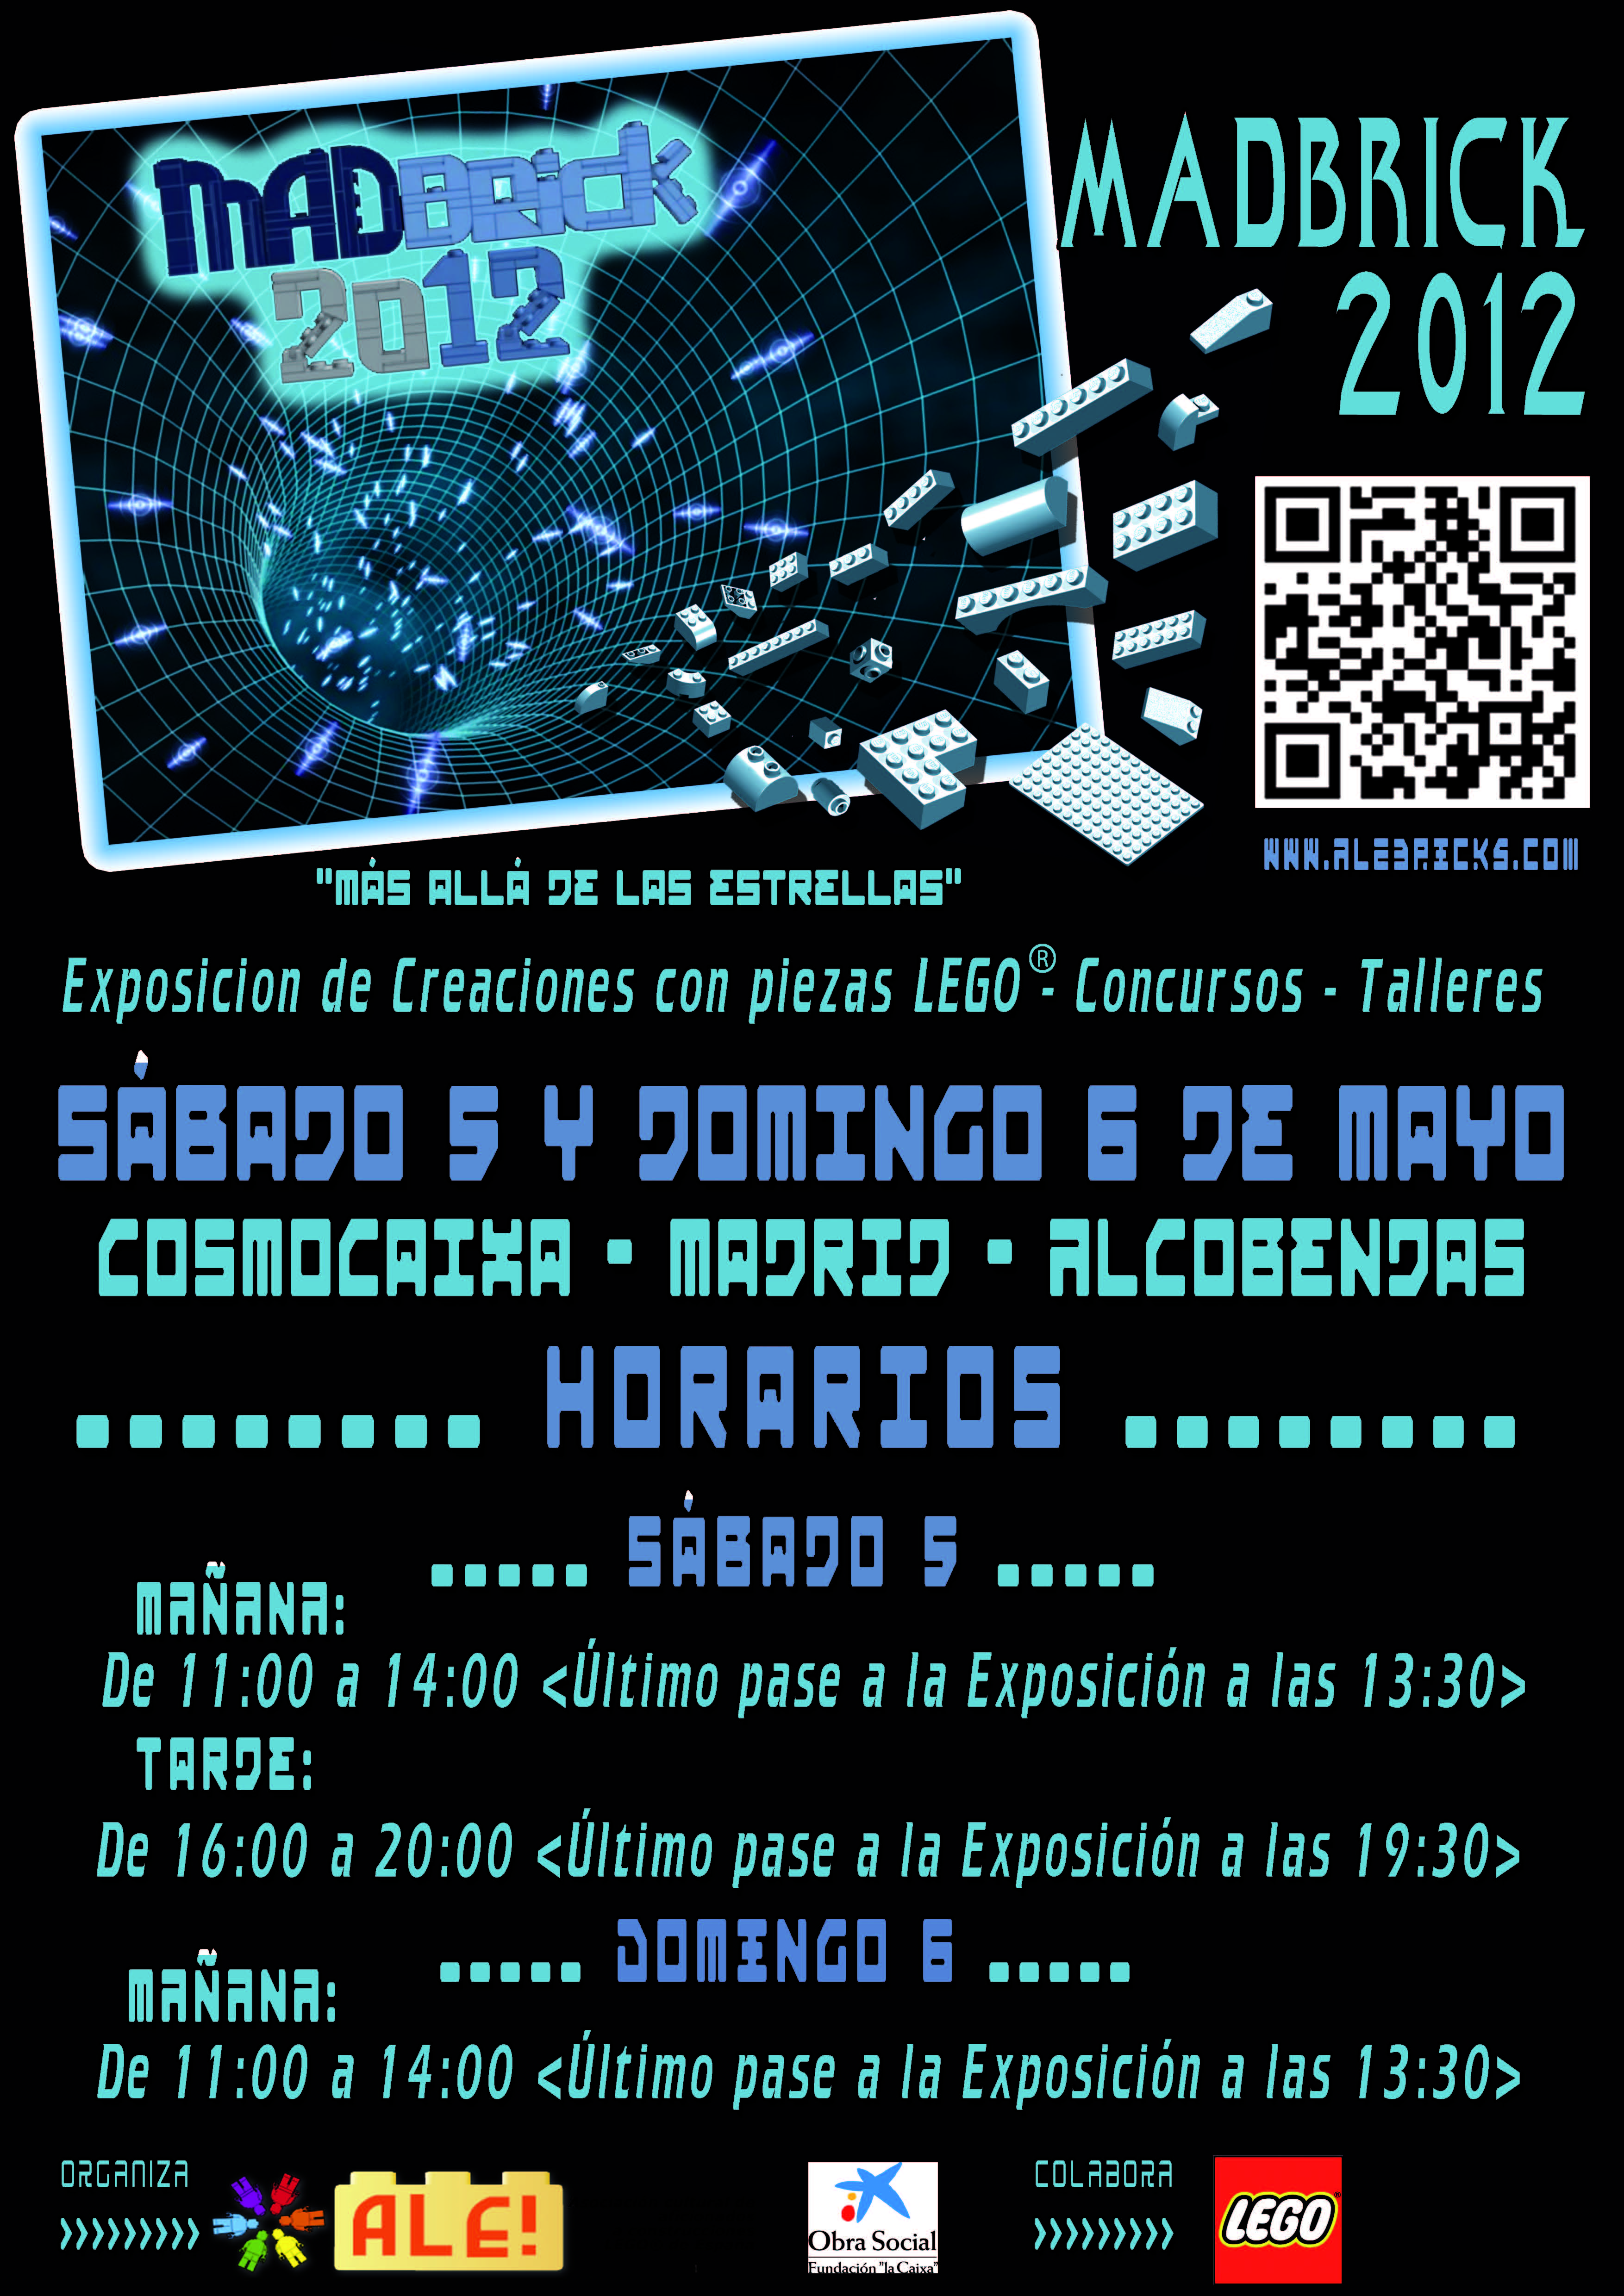 cartel_horario_expo4black.jpg